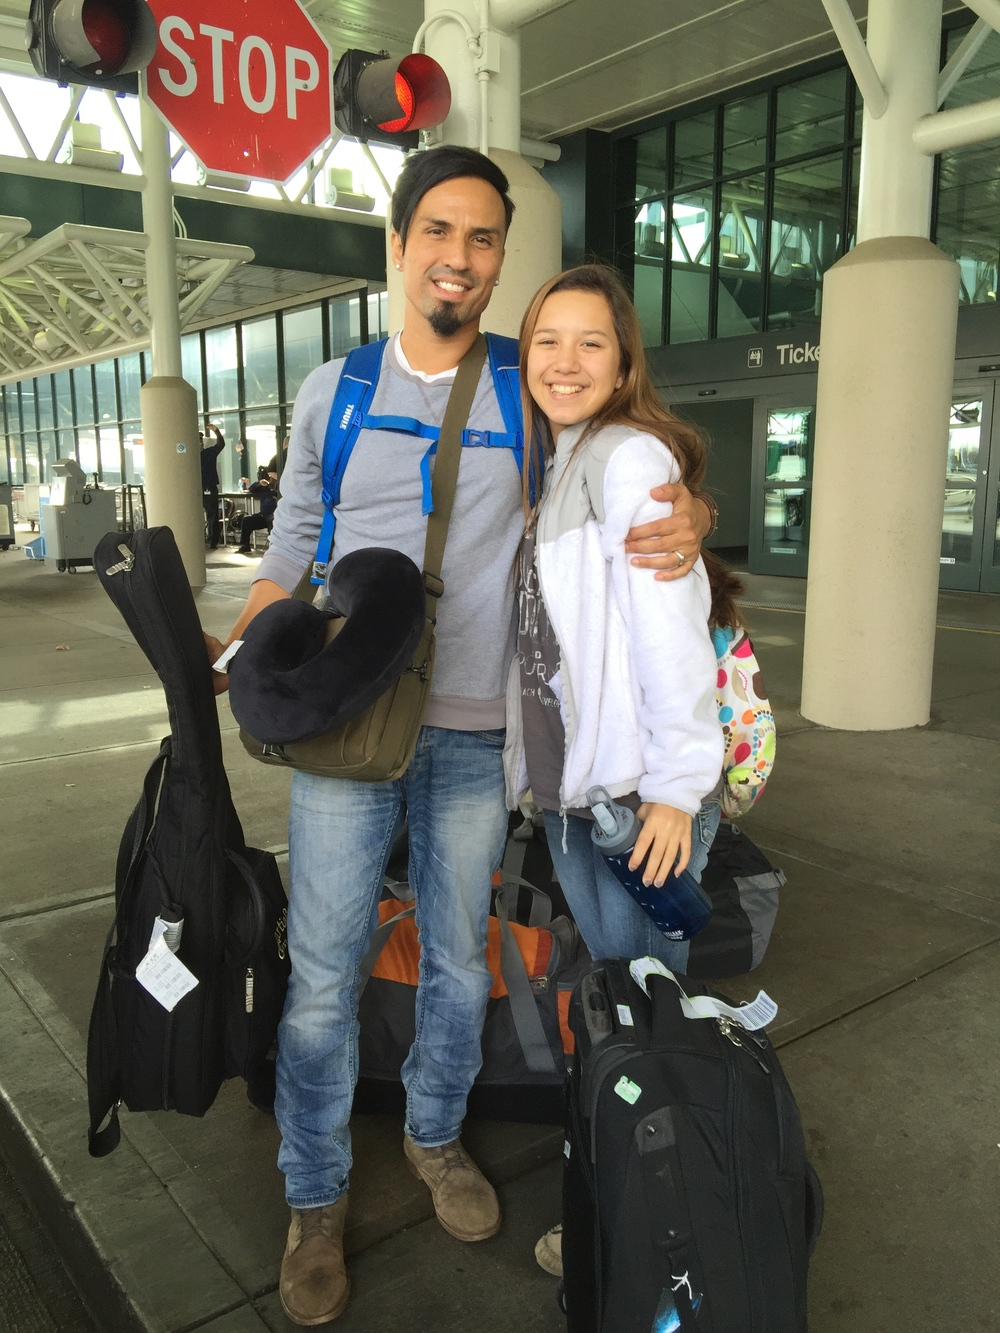 Gregg Garner, President and Founder of G.O.D. Int'l, takes his daughter Genesis on mission to El Salvador.